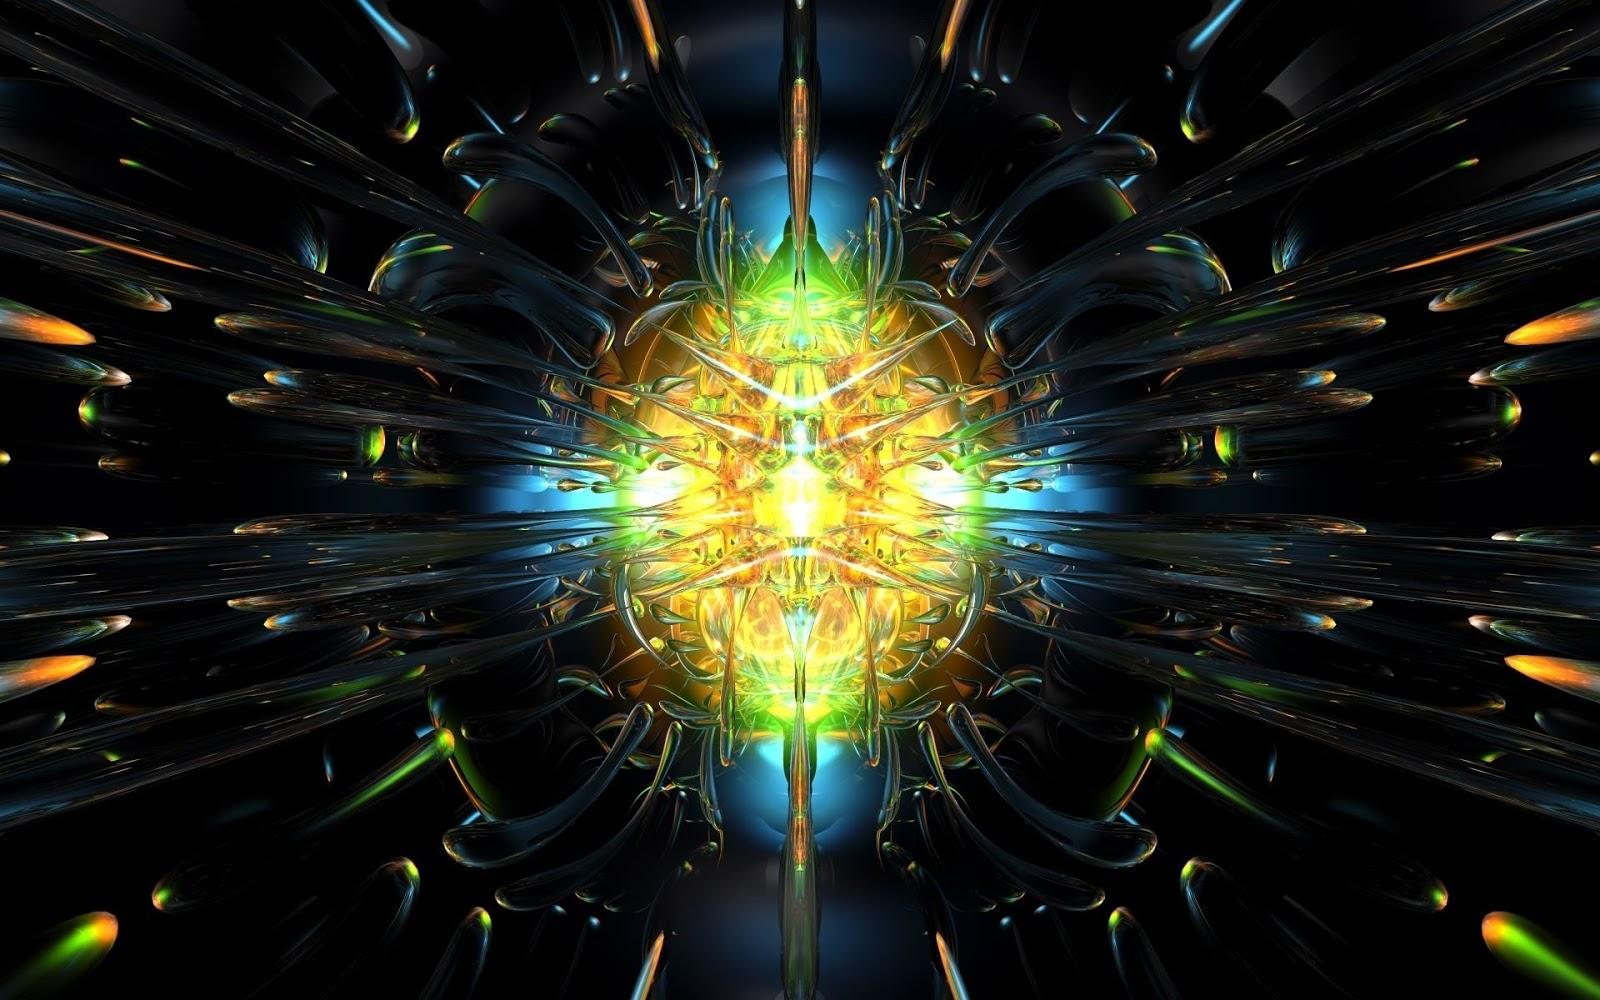 Gallery 3d Abstract Desktop Wallpapers Stylish Gallery Wallpapers